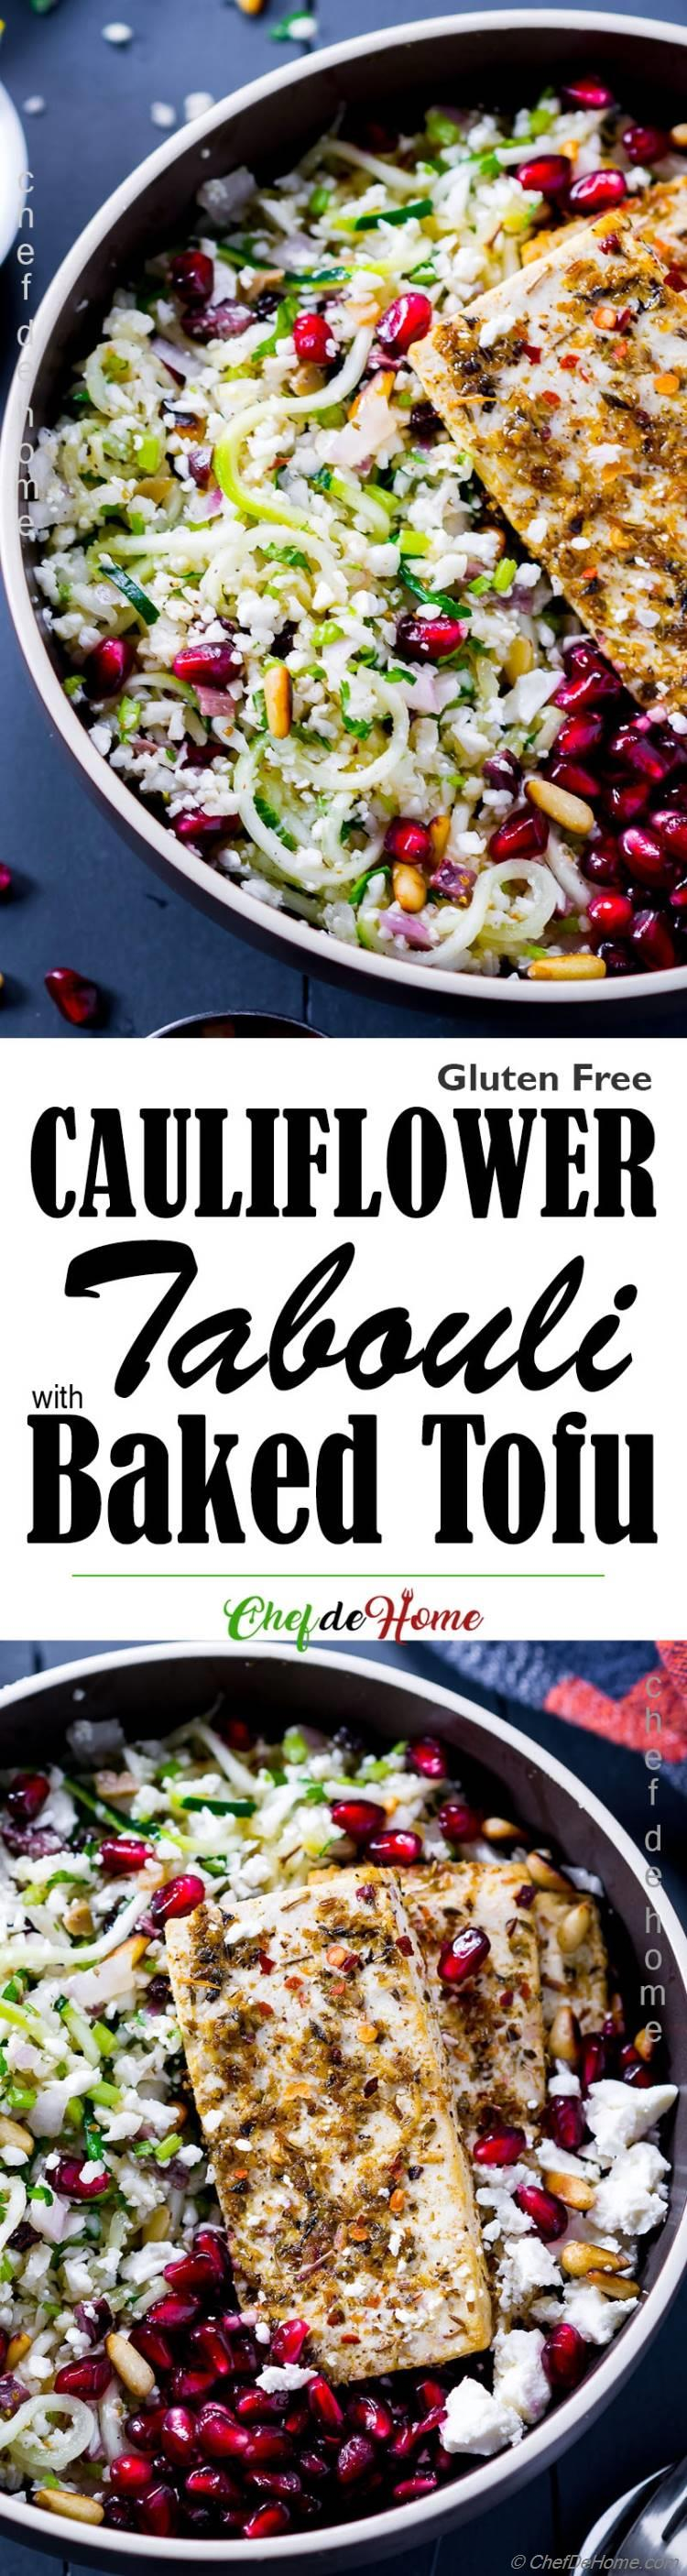 Cauliflower Low Carb Tabouleah Salad